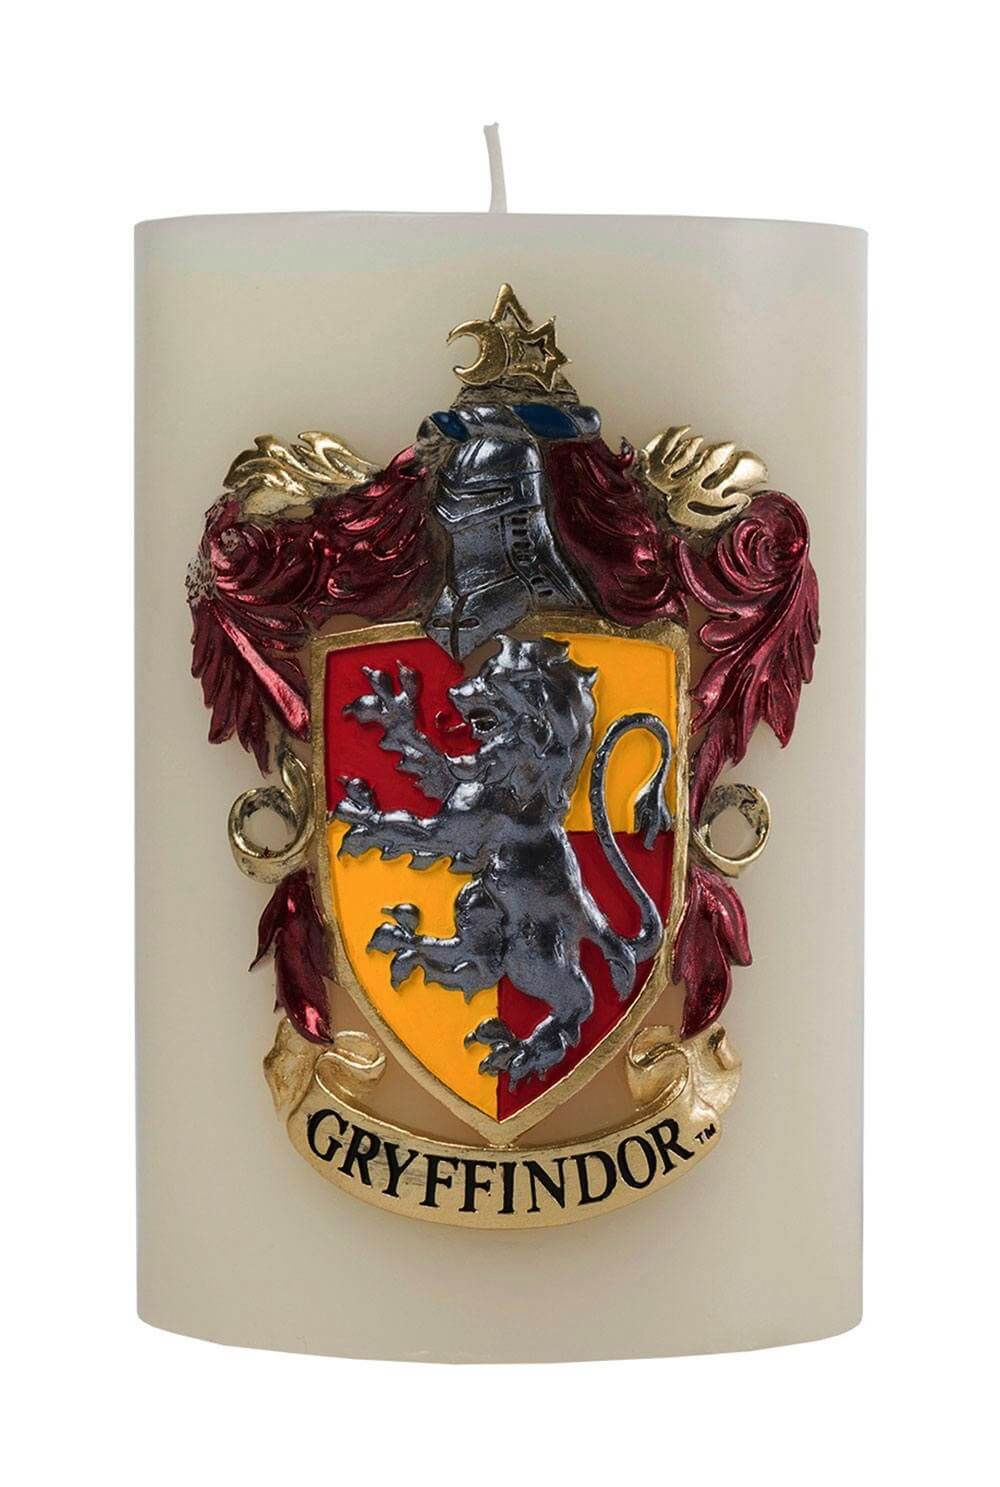 BOUGIE GRYFFONDOR XL 15 X 10 CM - HARRY POTTER - la boutique du sorcier